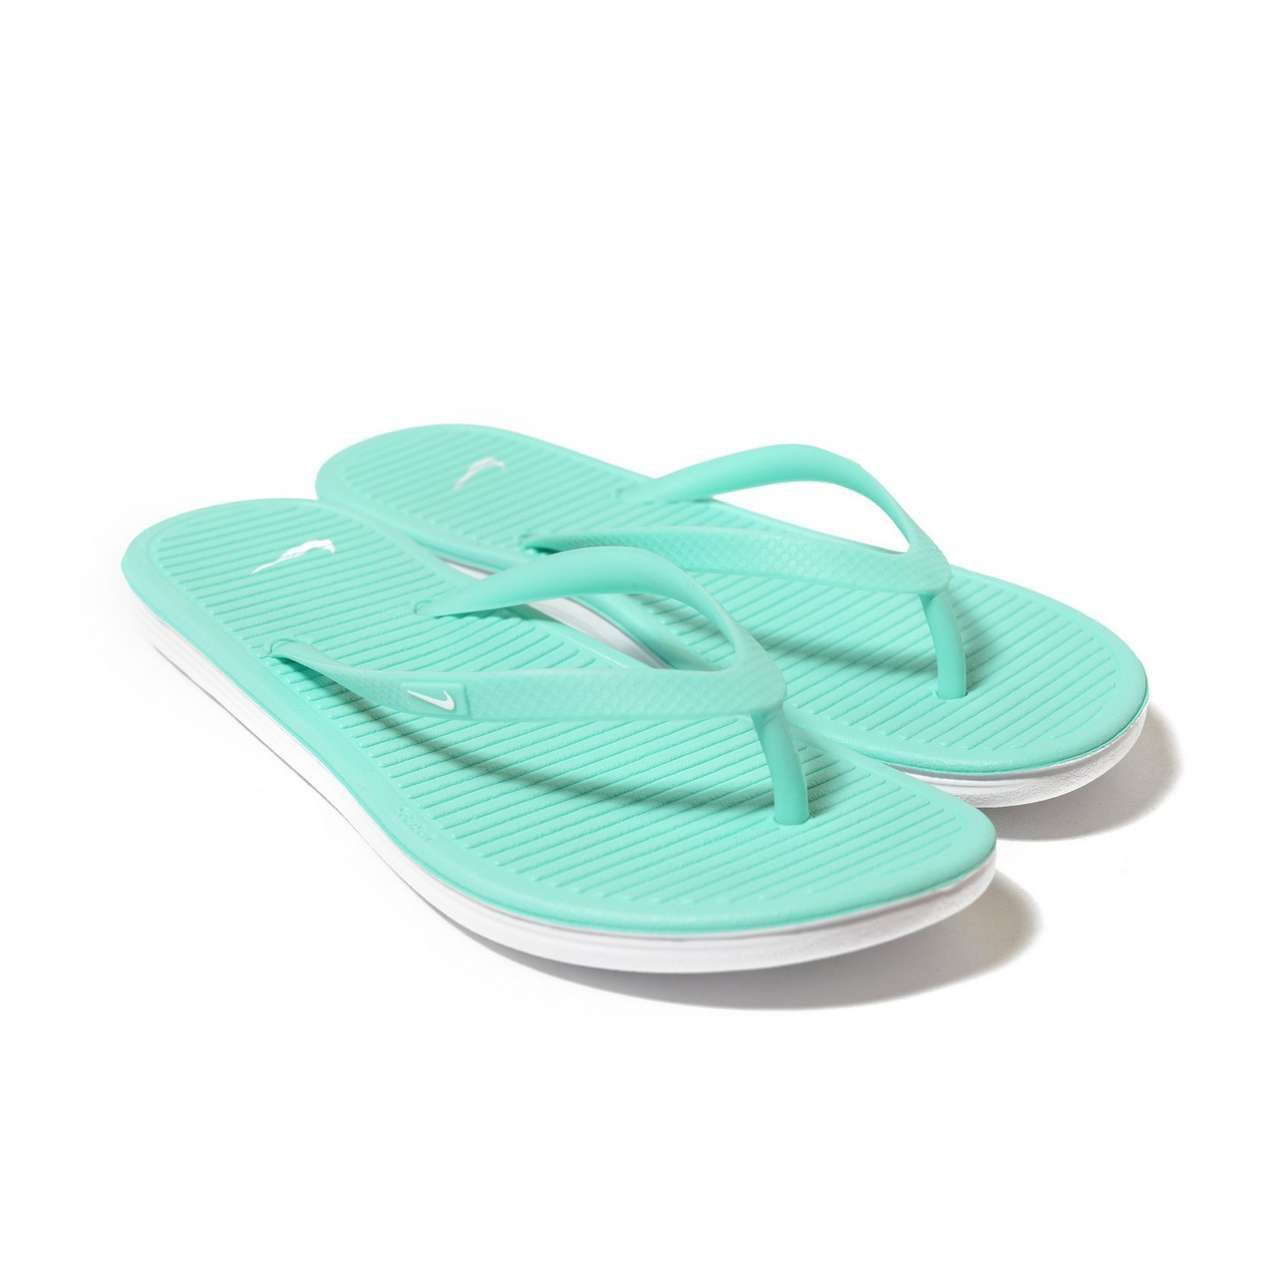 Nike Solarsoft Flip Flops Women's - Shop online for Nike Solarsoft Flip  Flops Women's with JD Sports, the UK's leading sports fashion retailer.